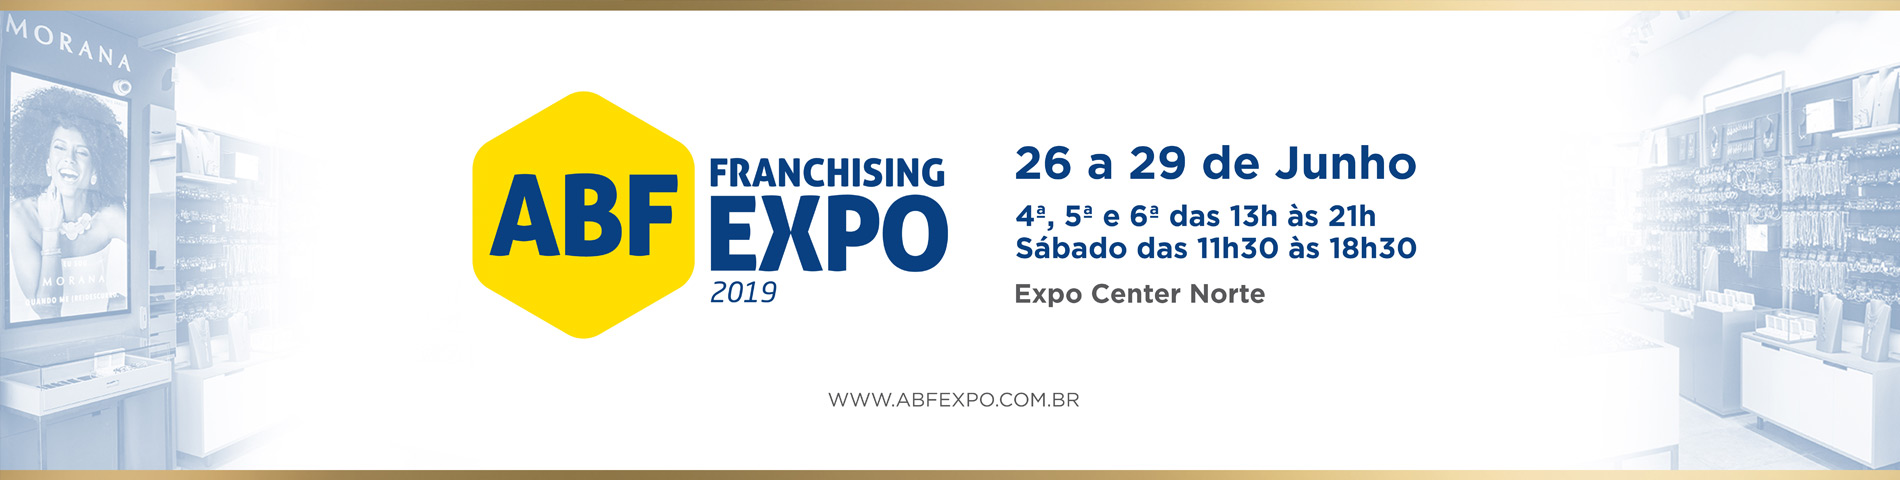 ABF Franchising Expo 2019